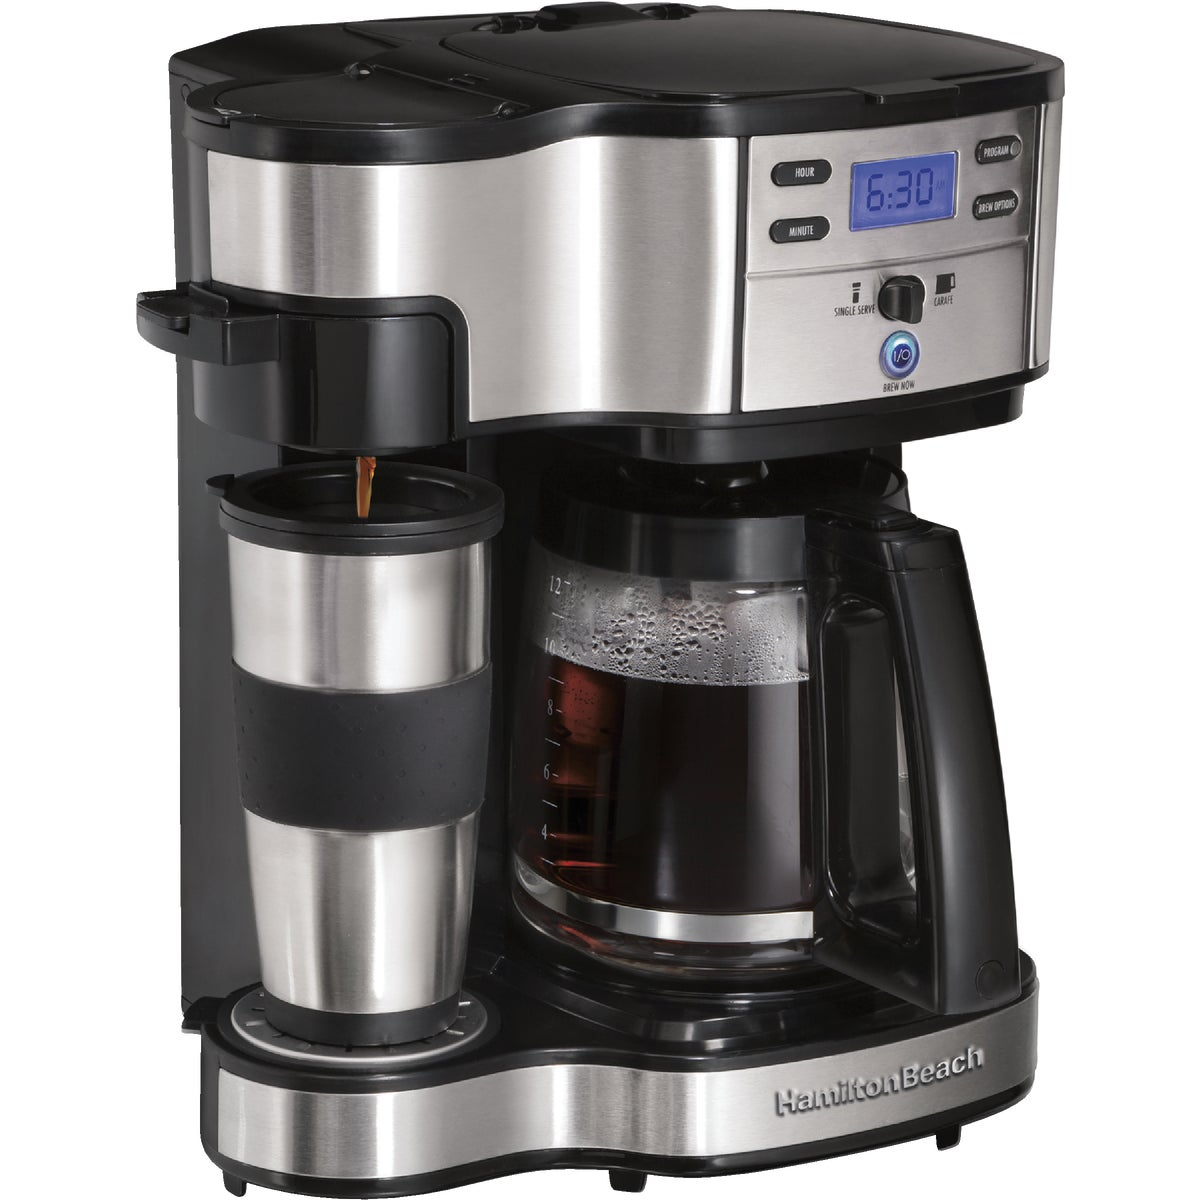 2 WAY BREWER - 49980Z by Hamilton Beach Brand